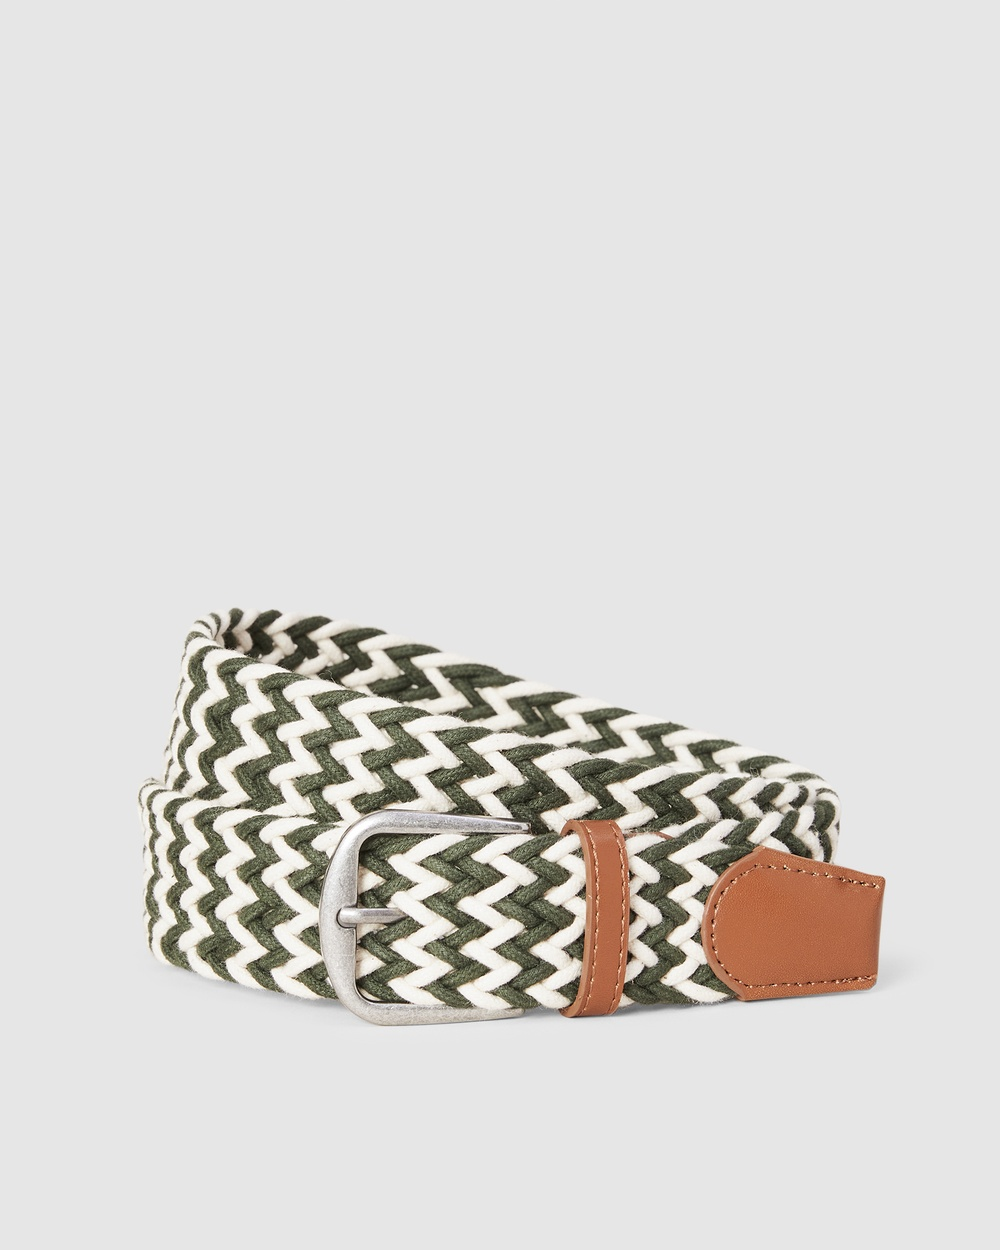 French Connection Rope Belt Belts ECRU/MOSS